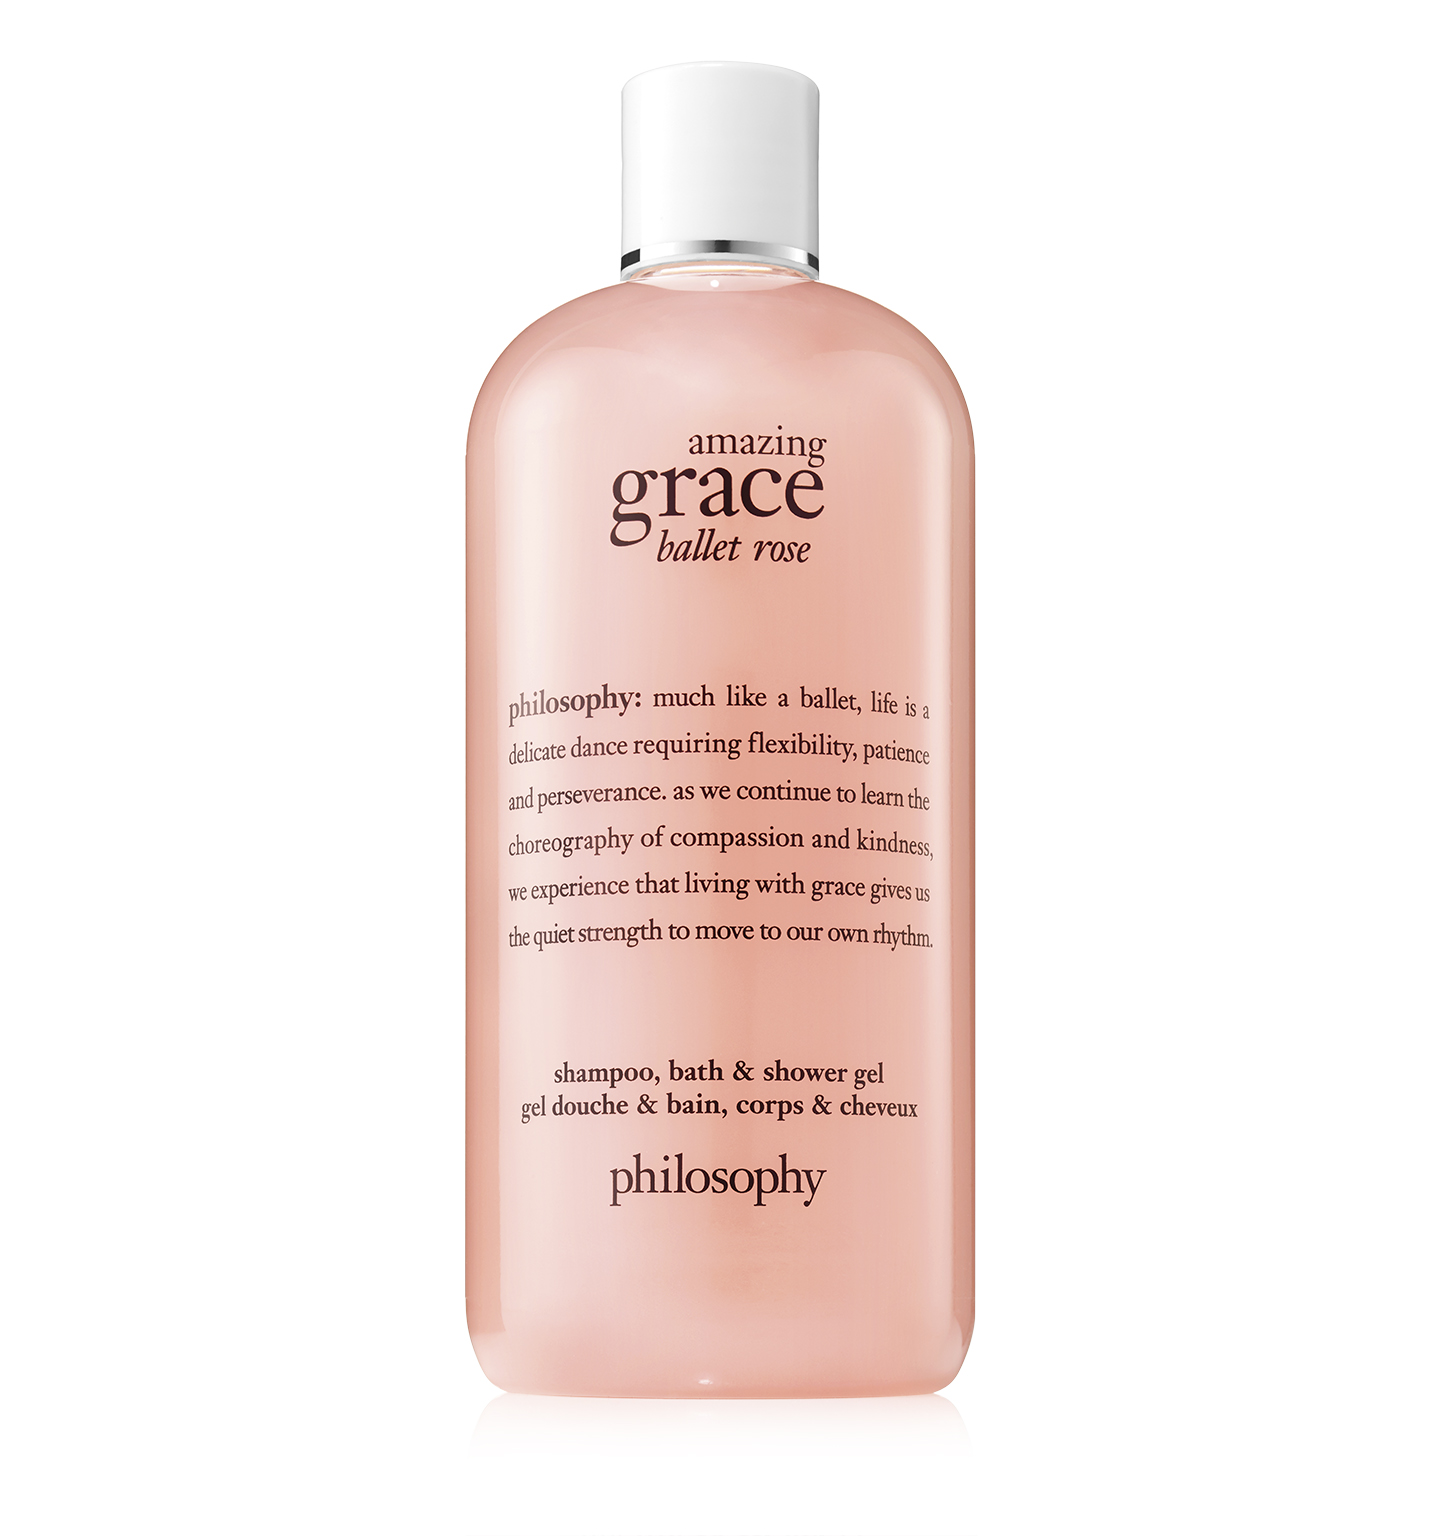 philosophy, amazing grace ballet rose shower gel